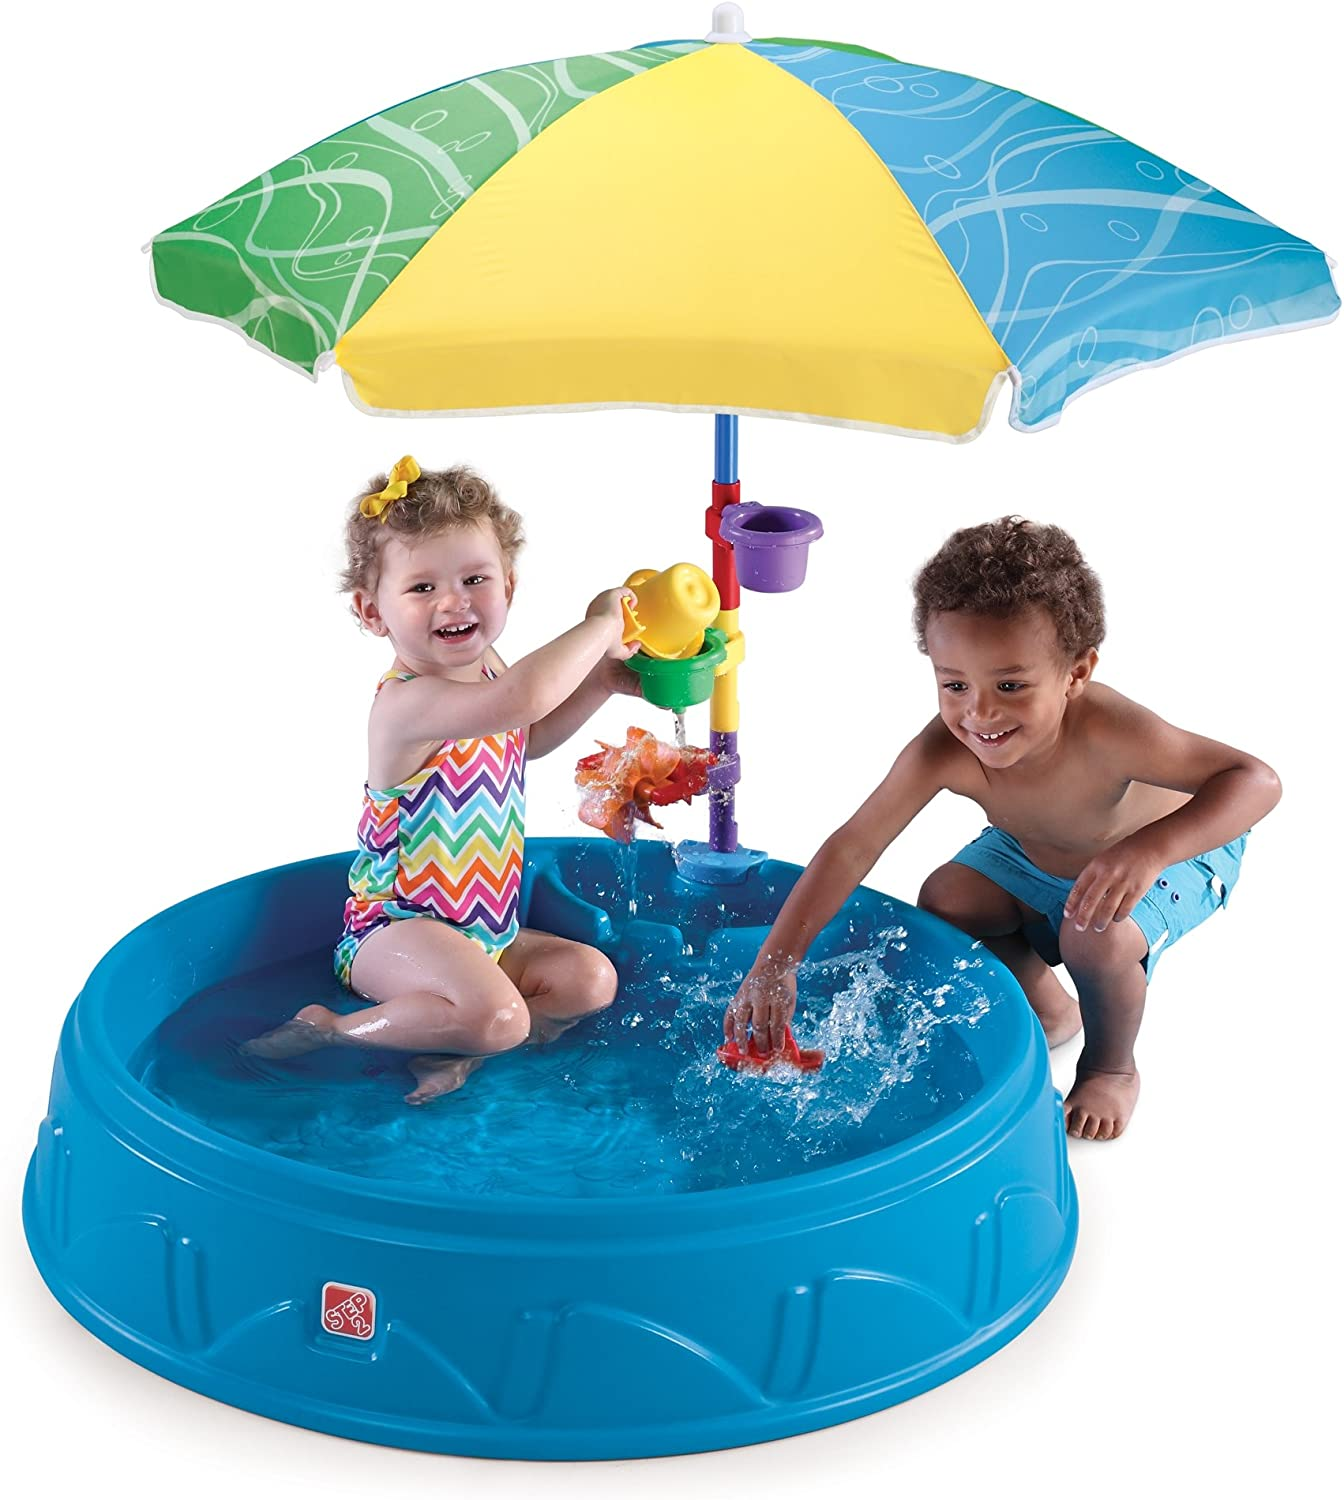 Top 10 Best Water Toys For Toddlers (2020 Reviews & Buying Guide) 7